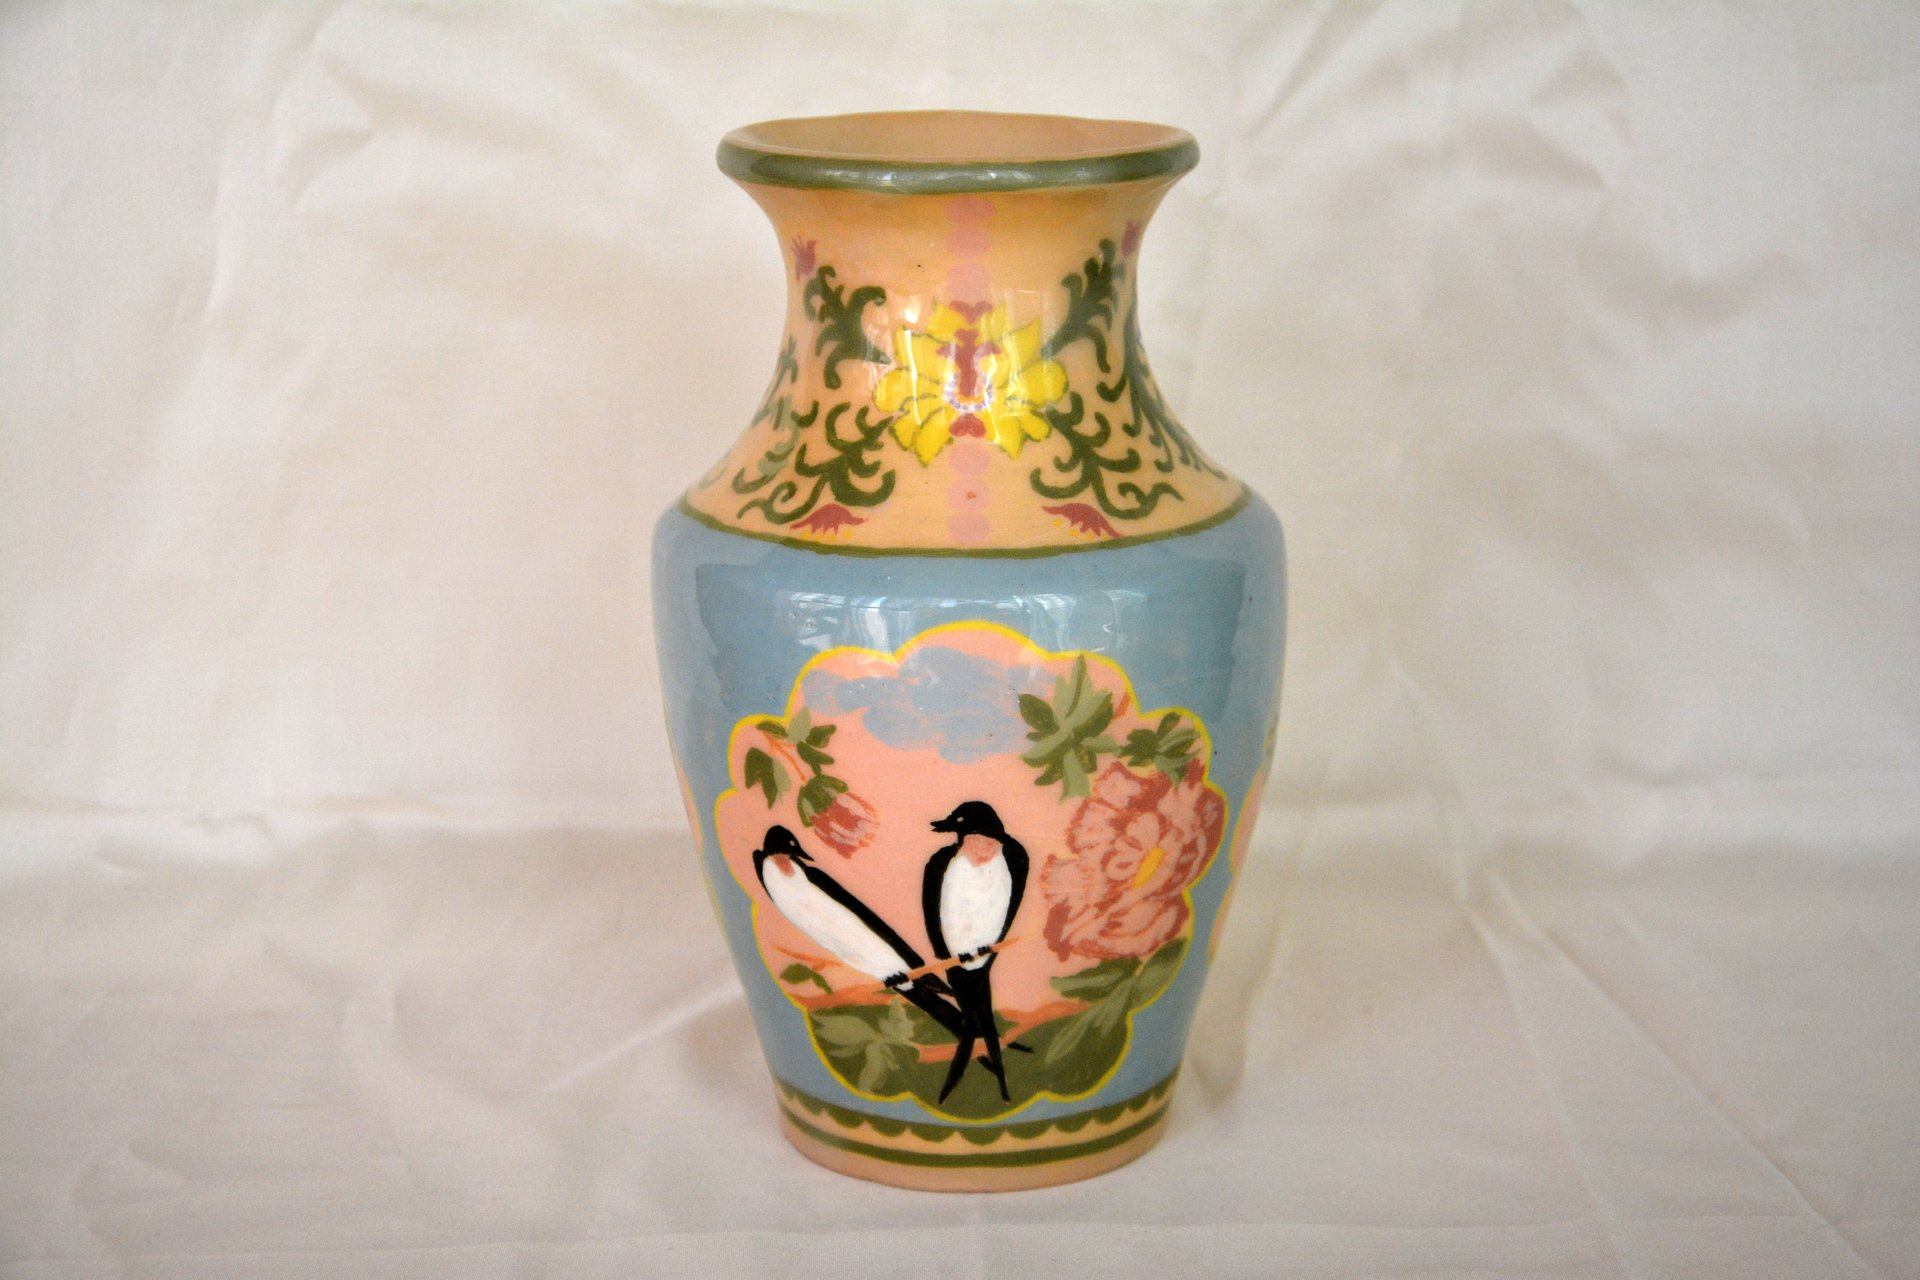 Ceramic classic vase with hand-painted swallows, height  - 18 cm, photo 5 of 5.